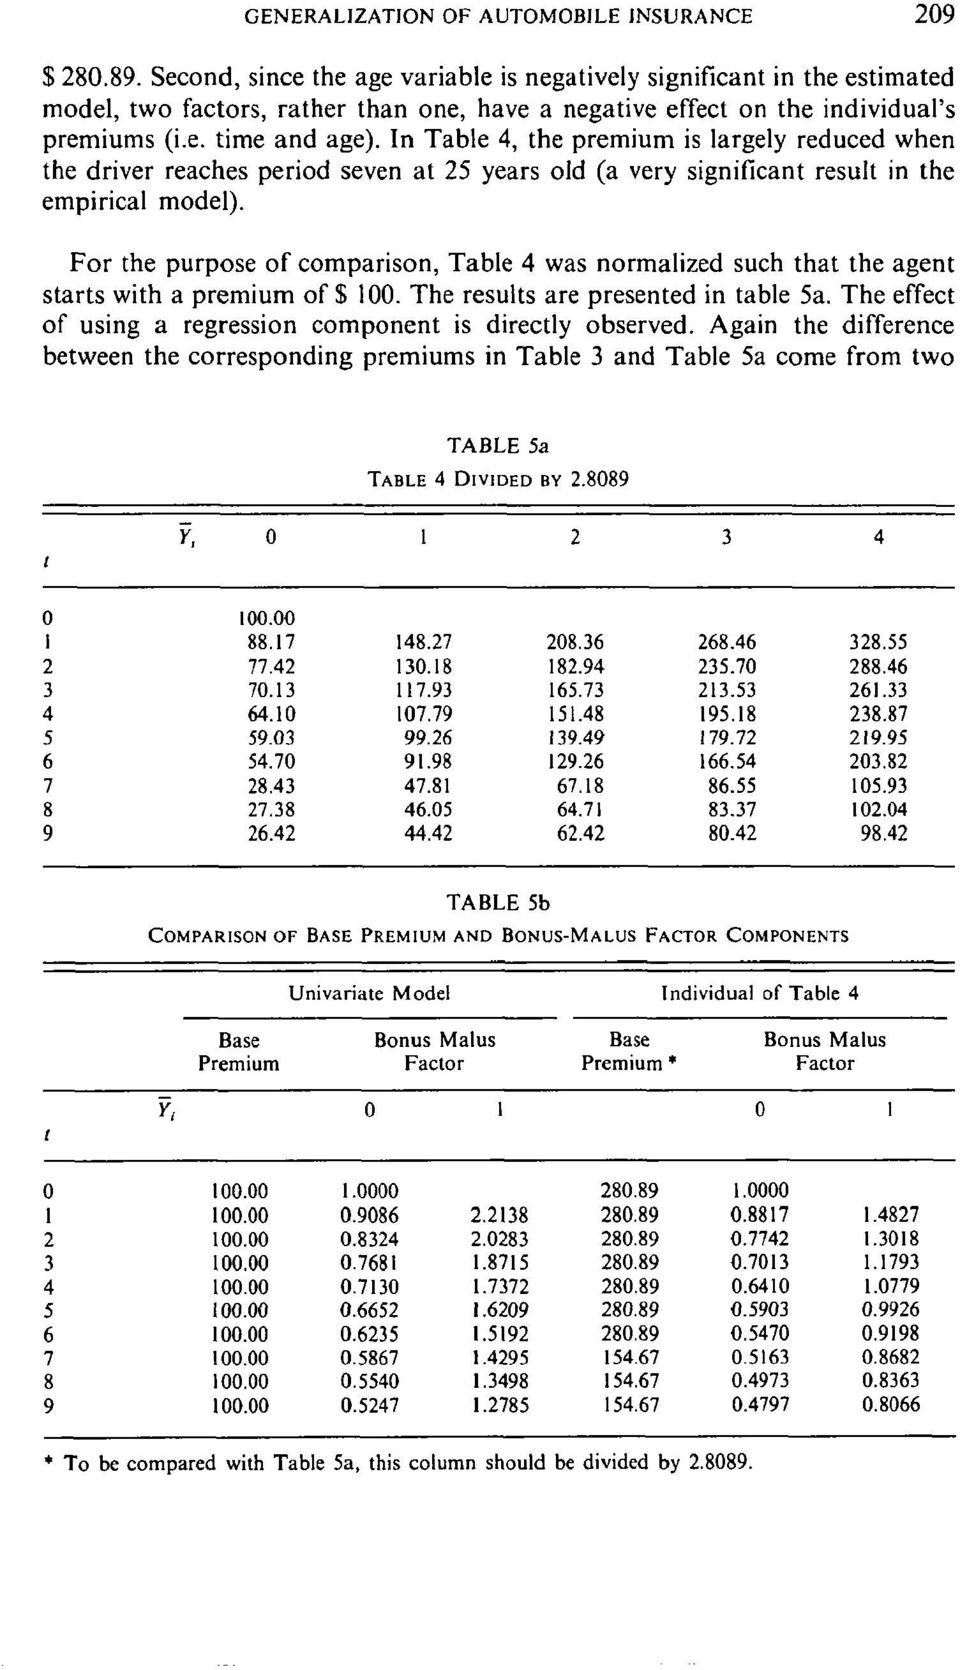 In Table 4, the premium is largely reduced when the driver reaches period seven at 25 years old (a very significant result in the empirical model).